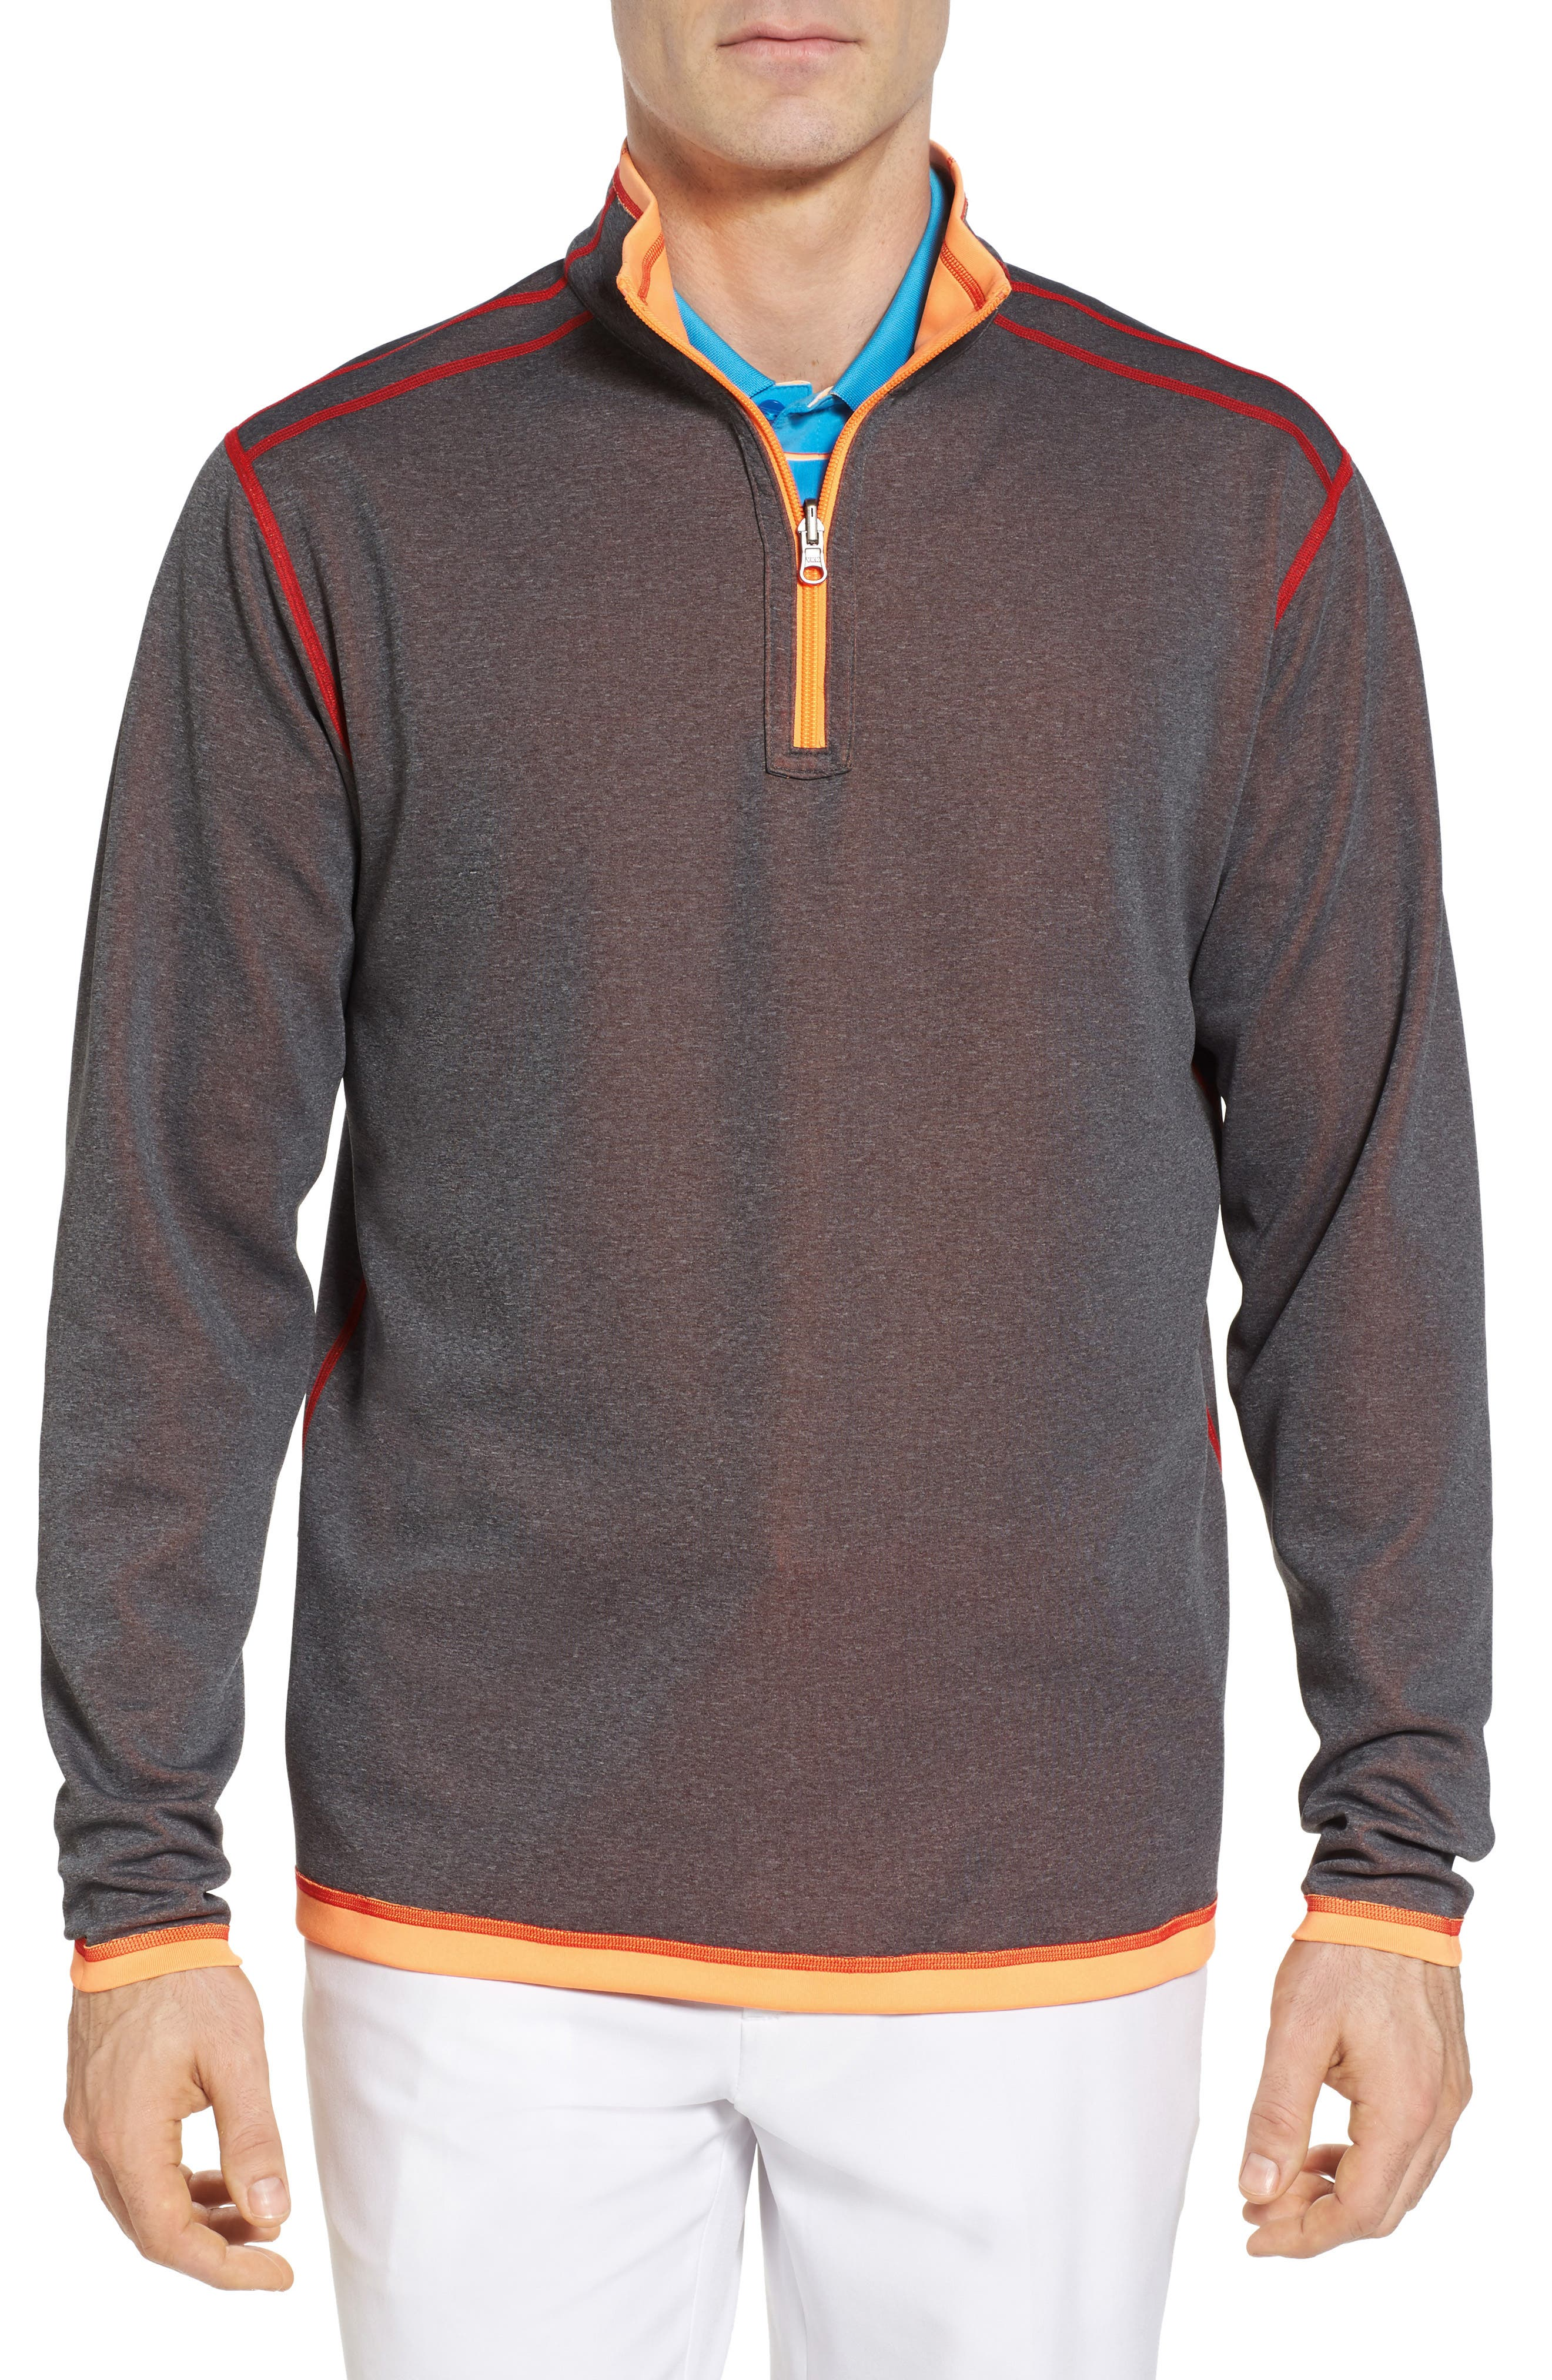 Evergreen Classic Fit DryTec Reversible Half Zip Pullover,                             Alternate thumbnail 3, color,                             Clarity